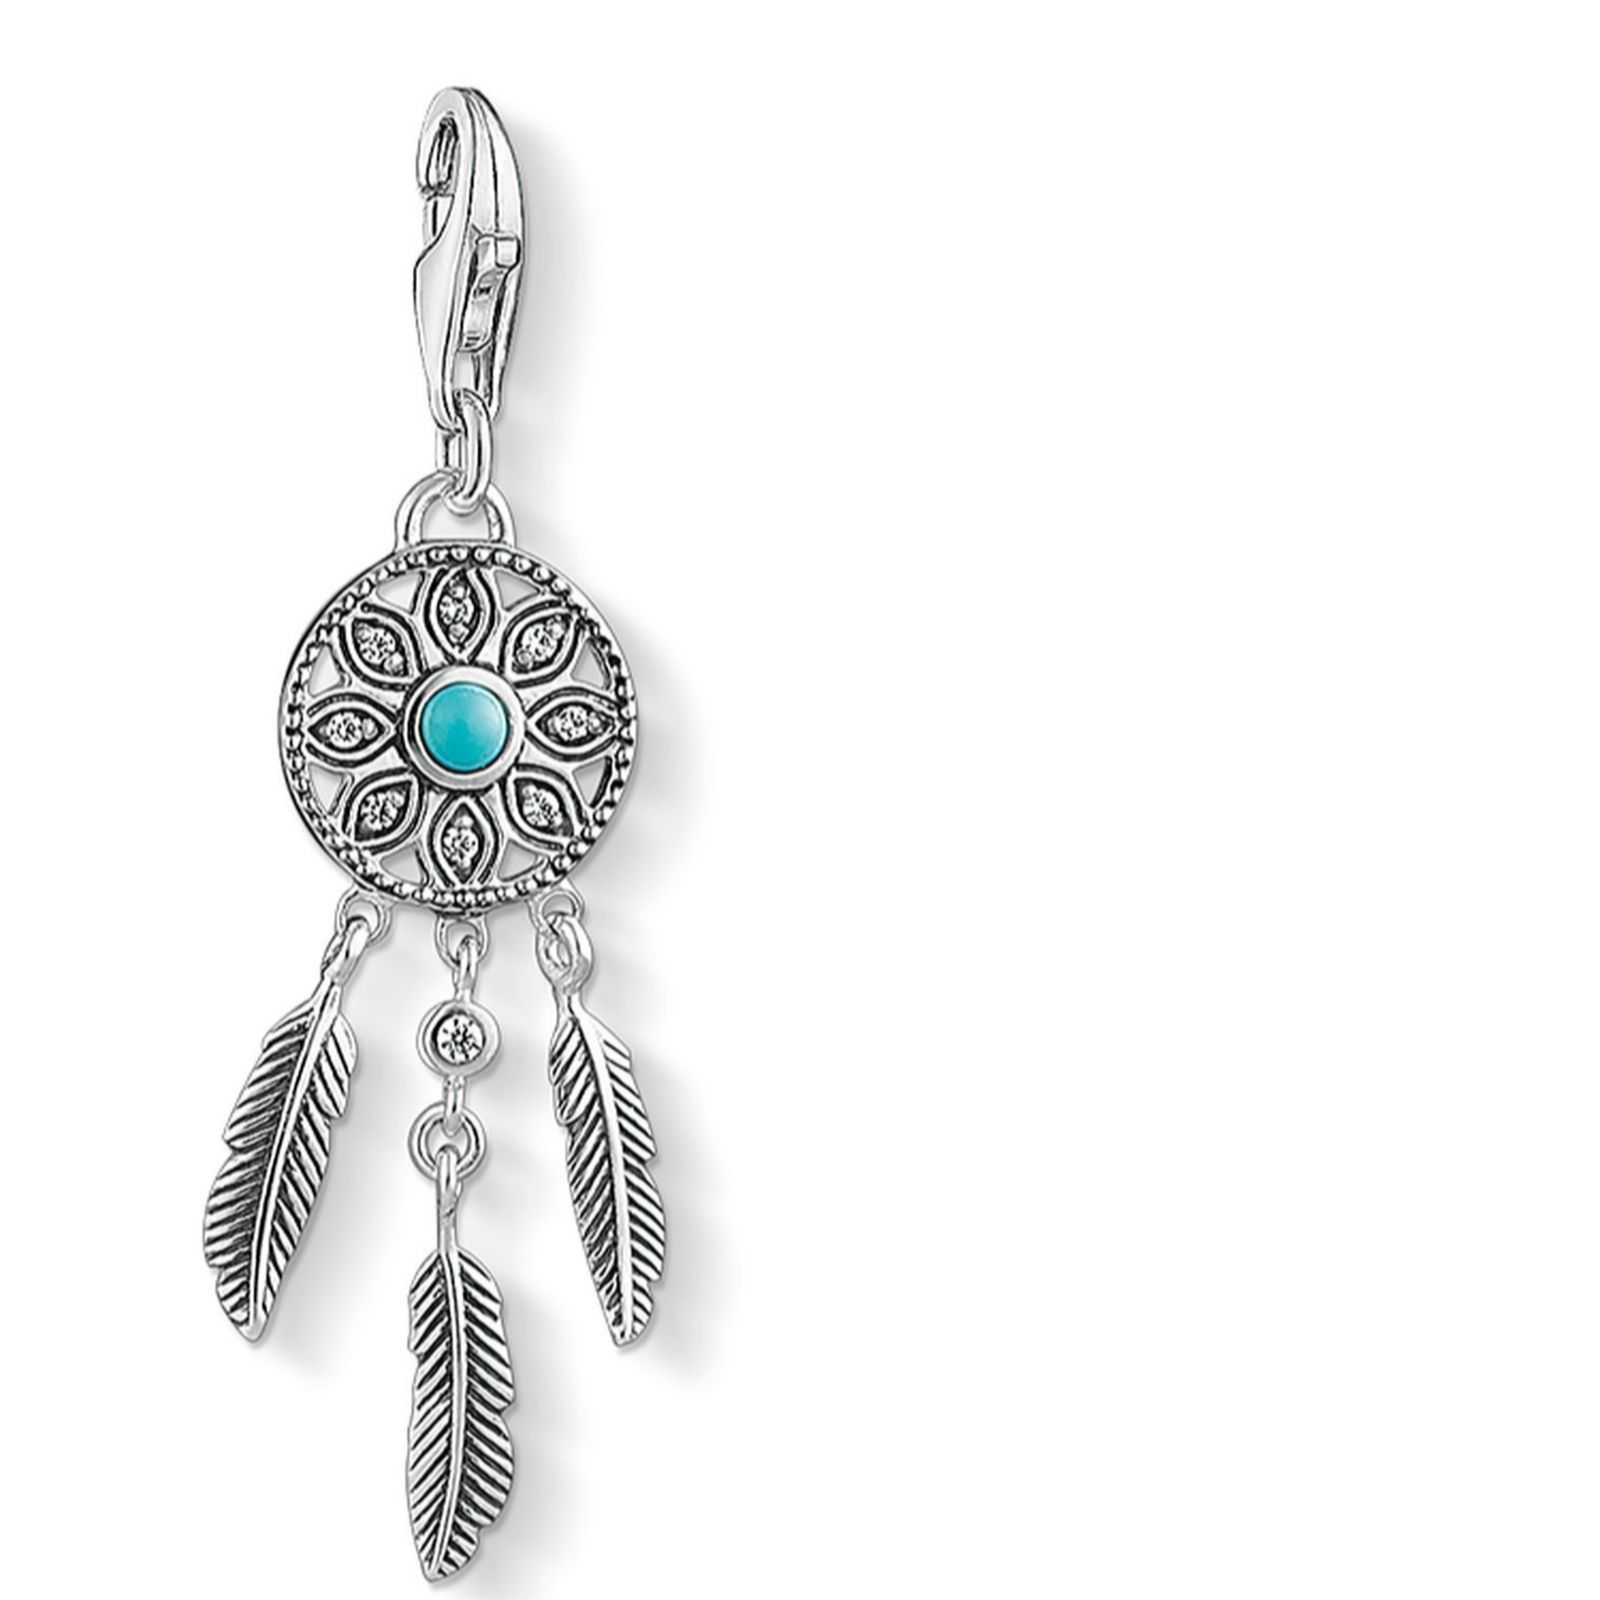 d27f3e170 Thomas Sabo Charm Club Dreamcatcher Charm Sterling Silver - QVC UK